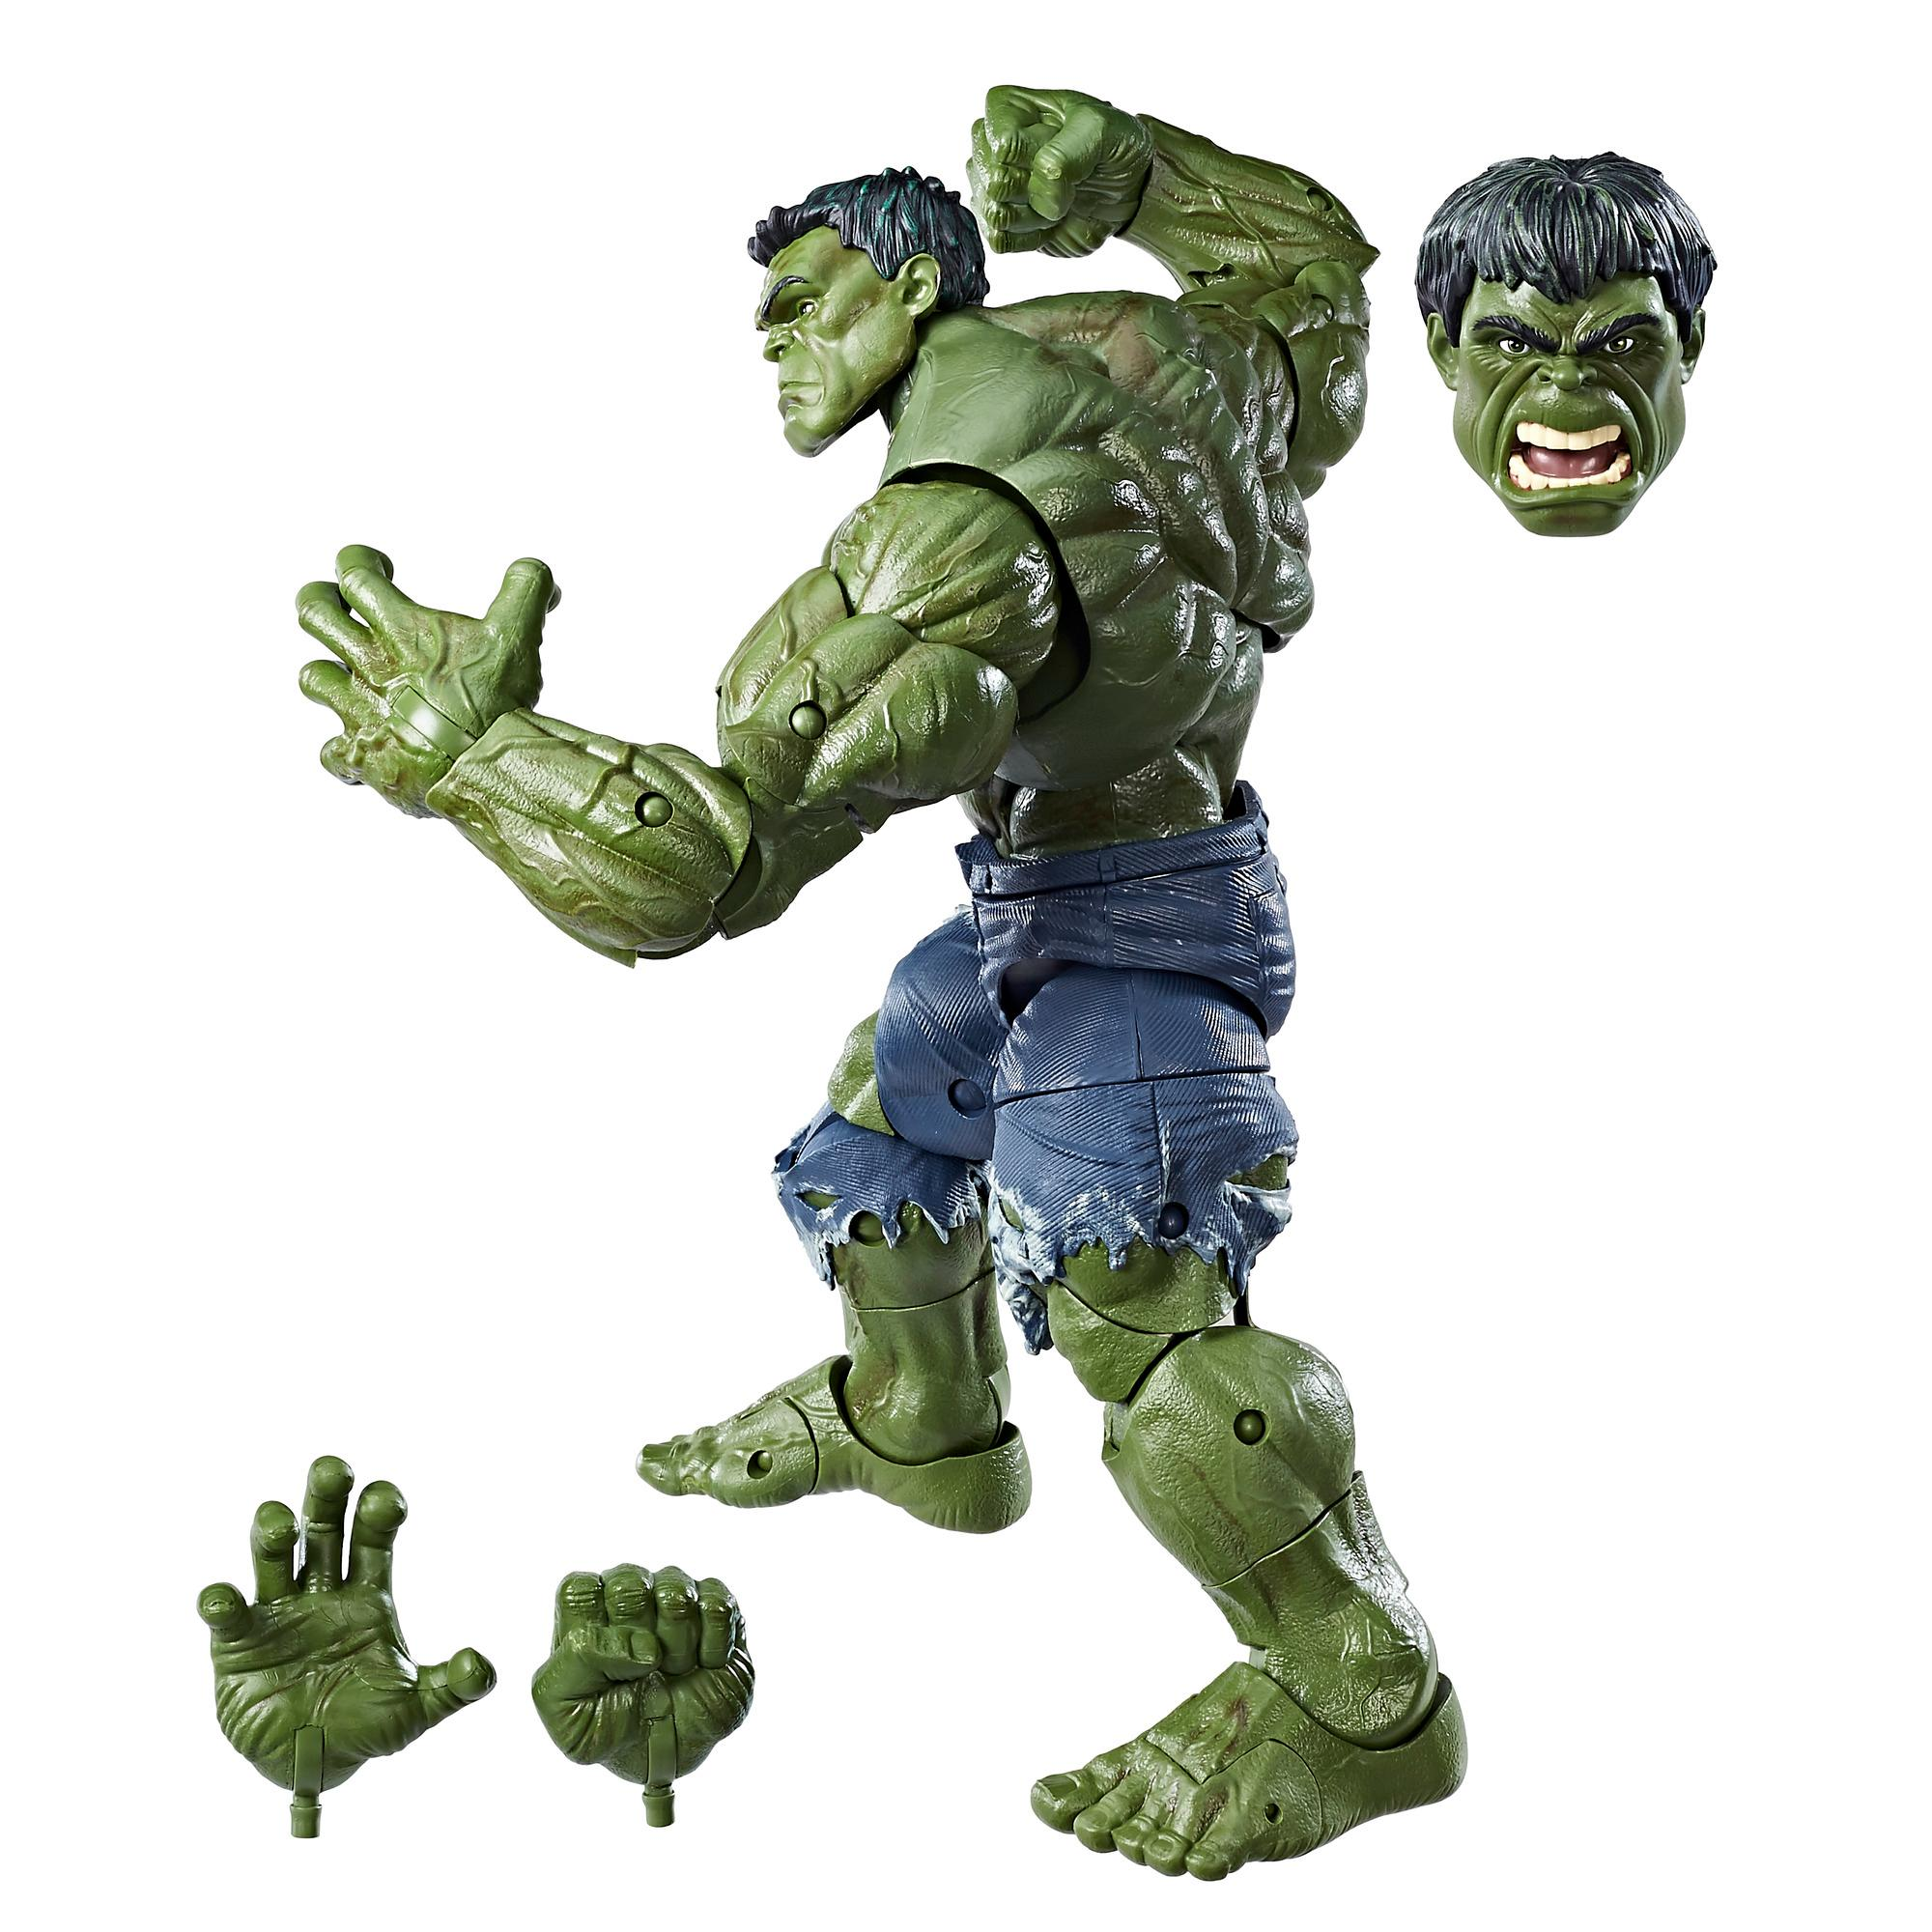 Amazon.com: Avengers Marvel Legends Series Hulk, 14.5-inch